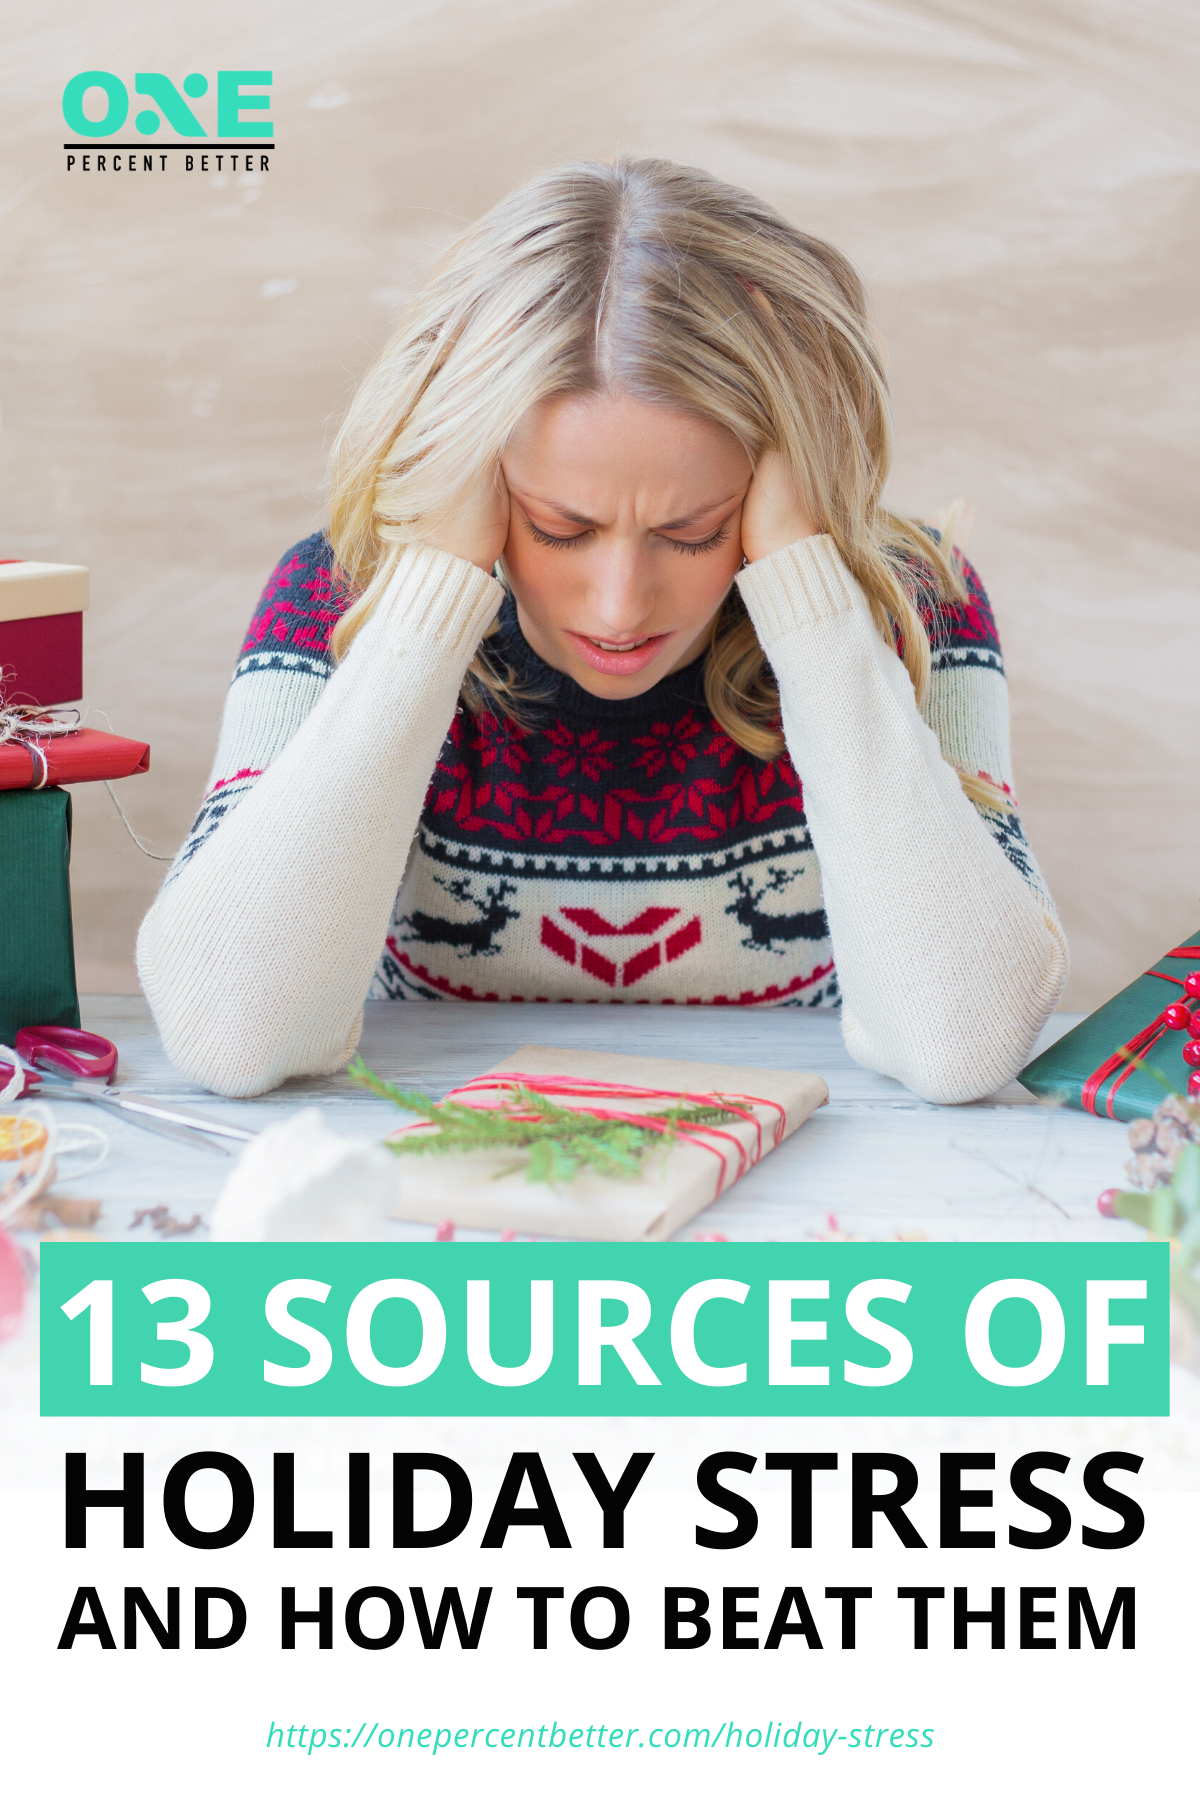 13 Sources Of Holiday Stress And How To Beat Them | https://onepercentbetter.com/holiday-stress/